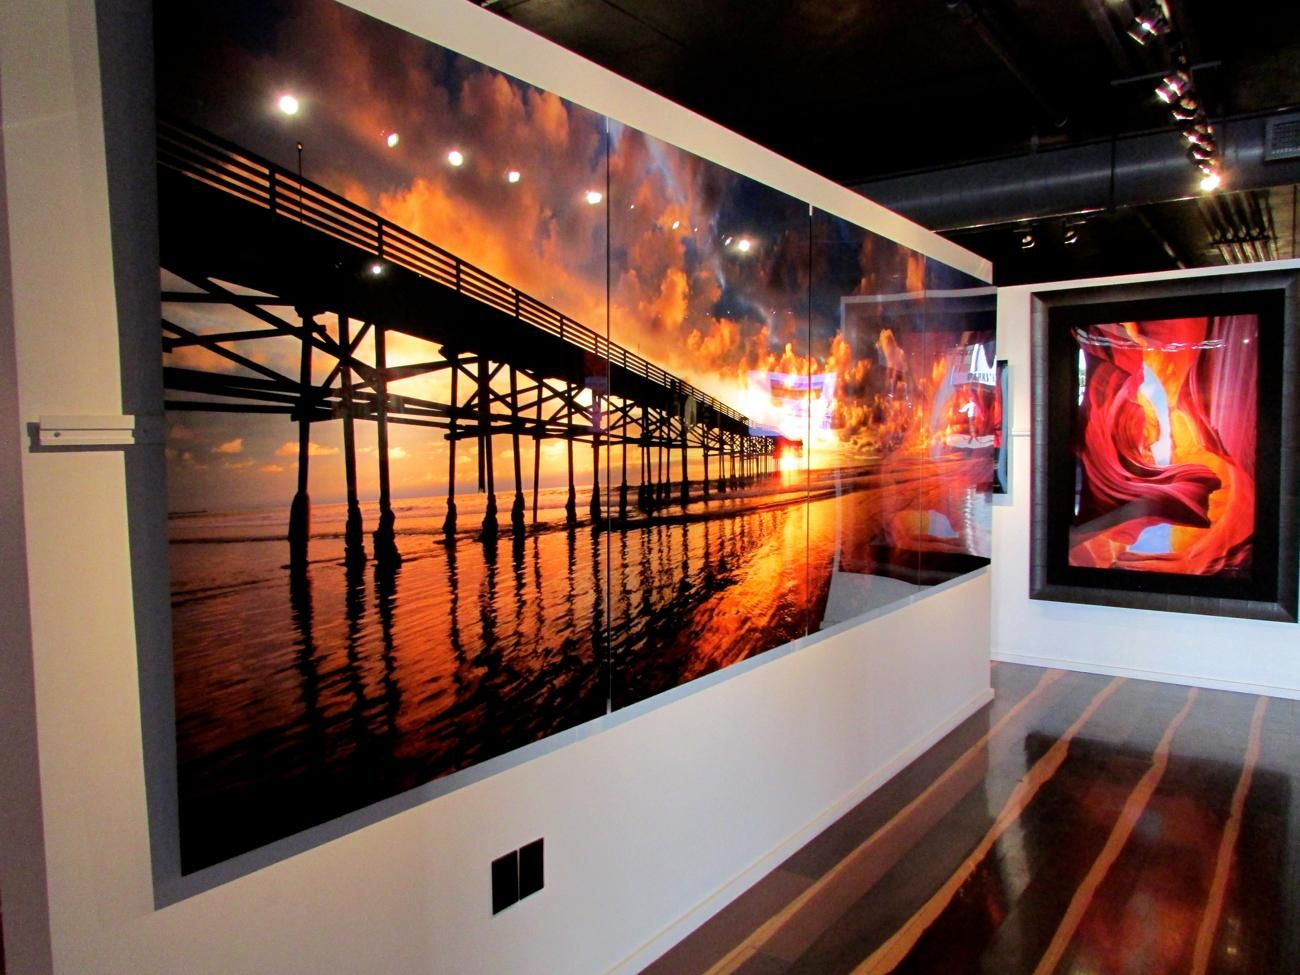 Peter Lik Gallery Seller of the World's Most Expensive